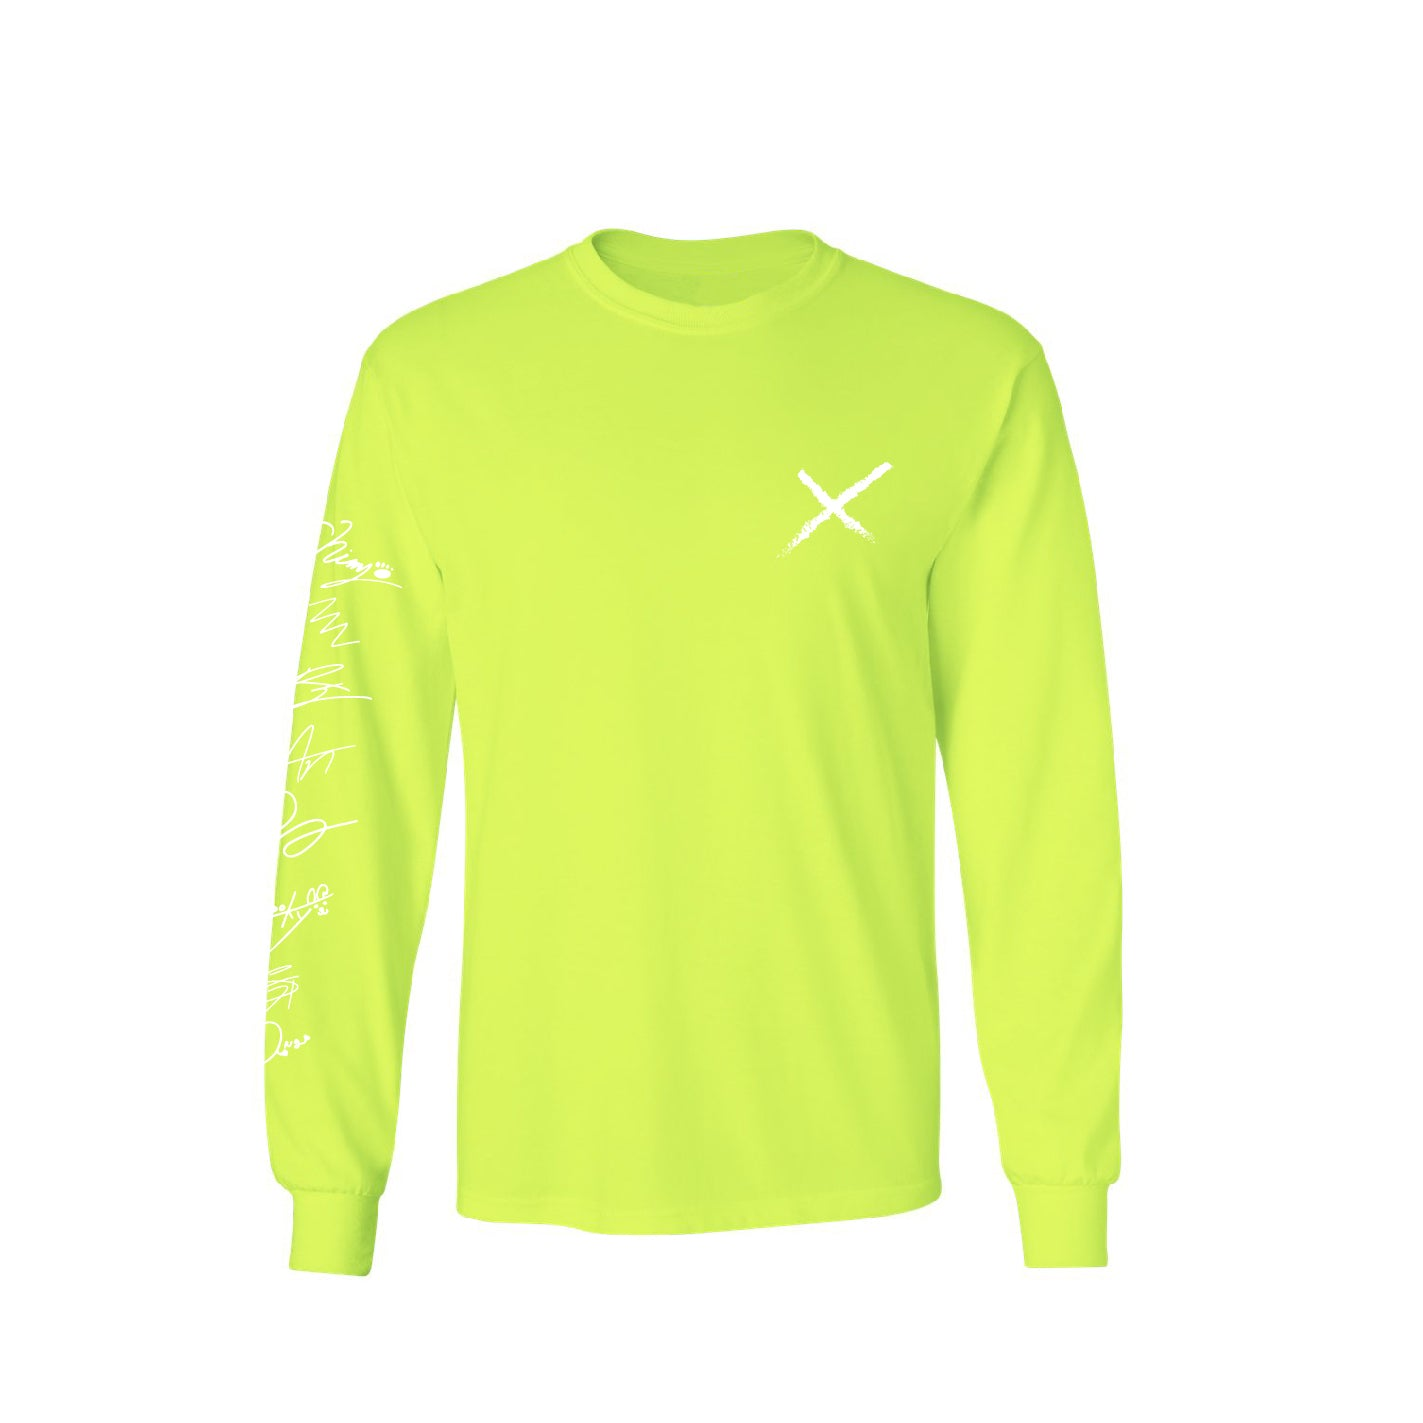 Glo Long Sleeve Tee